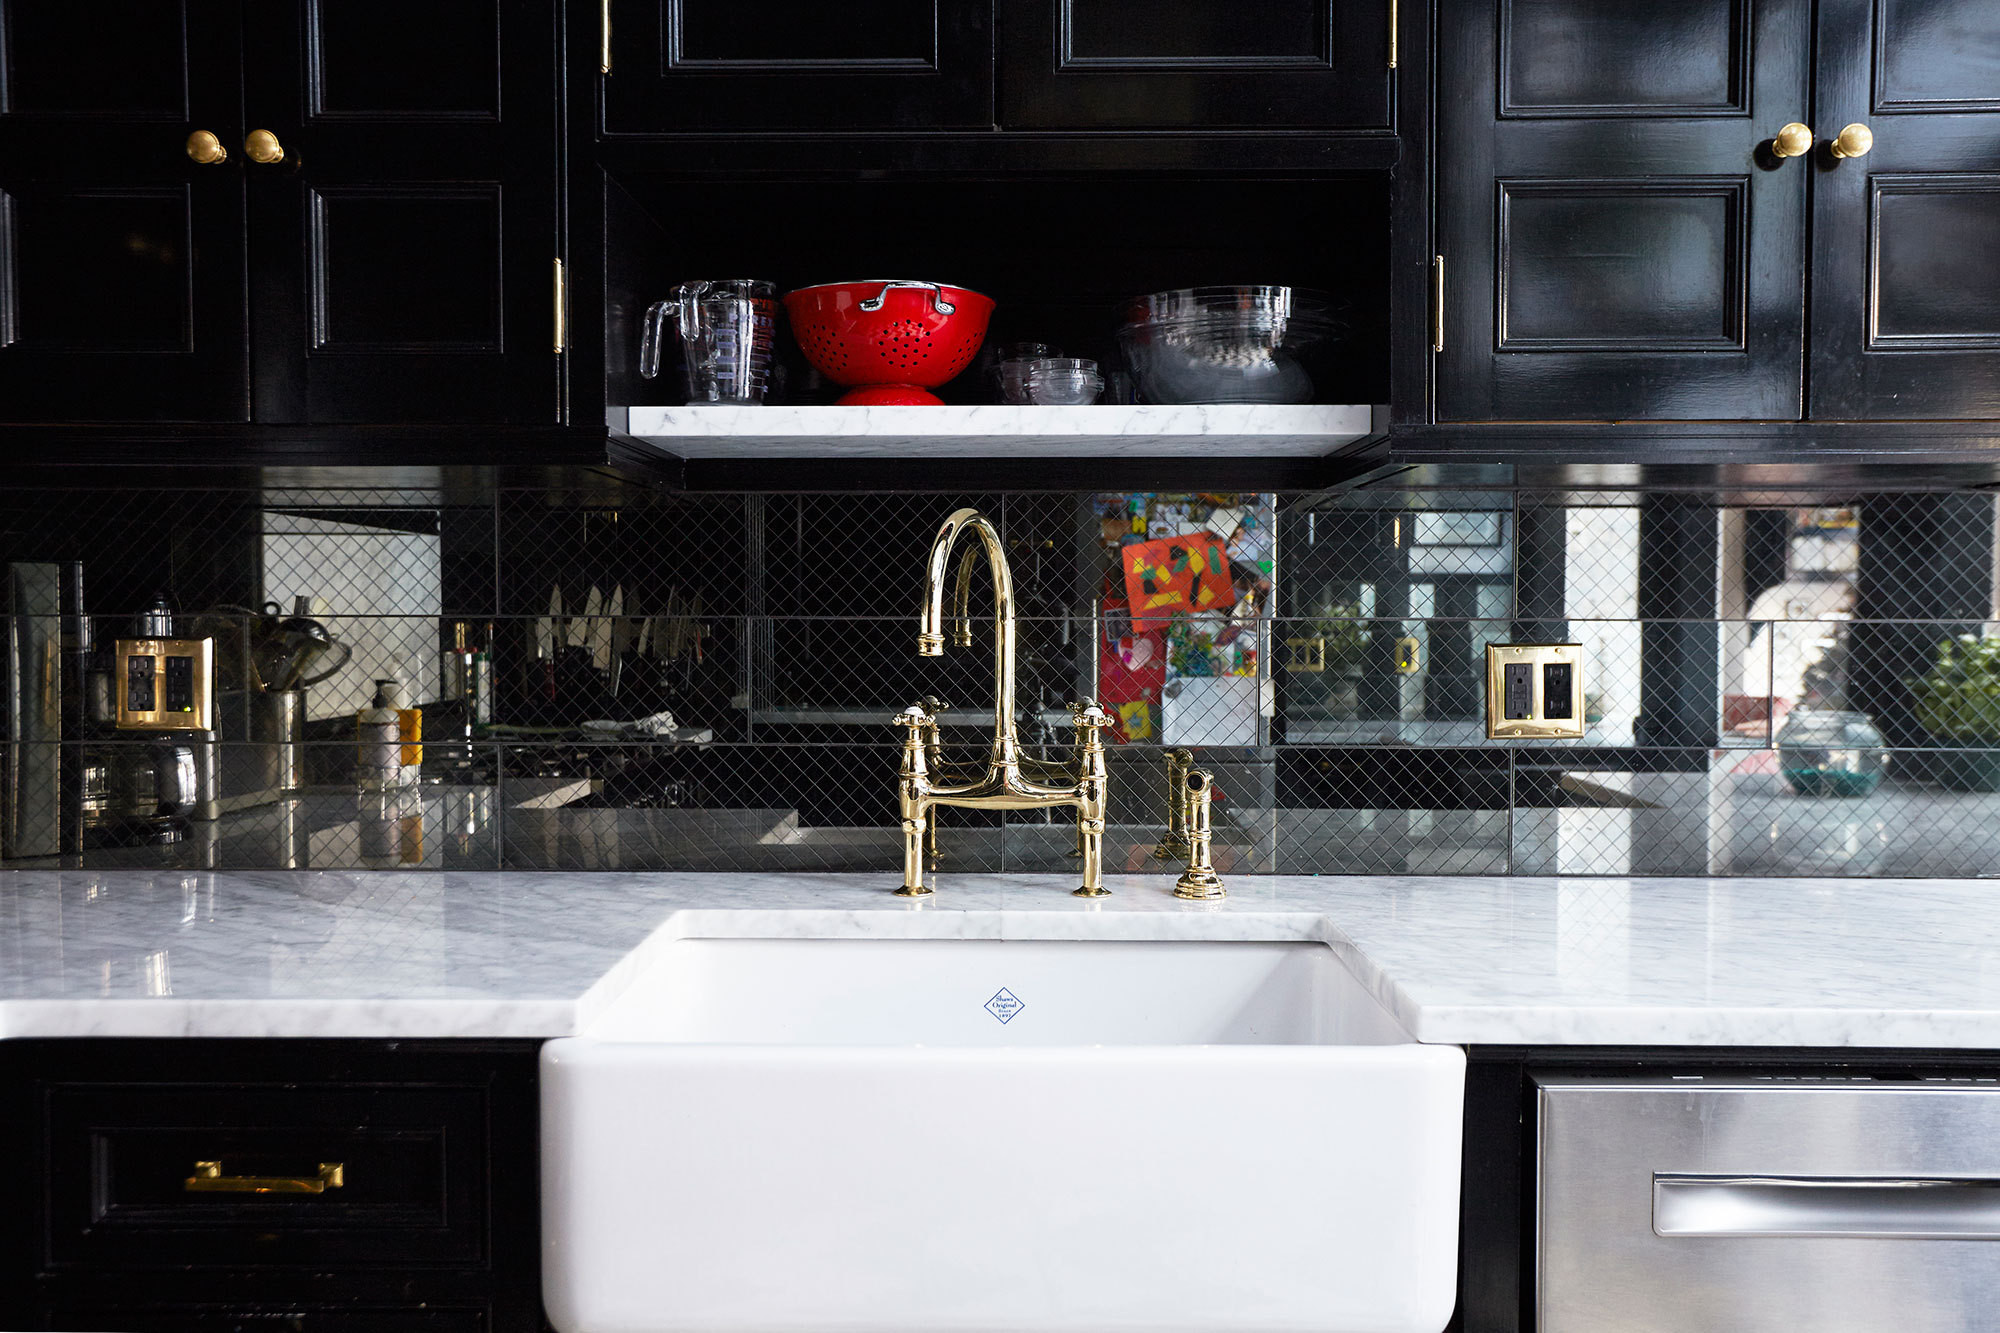 The high-glosss black and brass accented brownstone kitchen